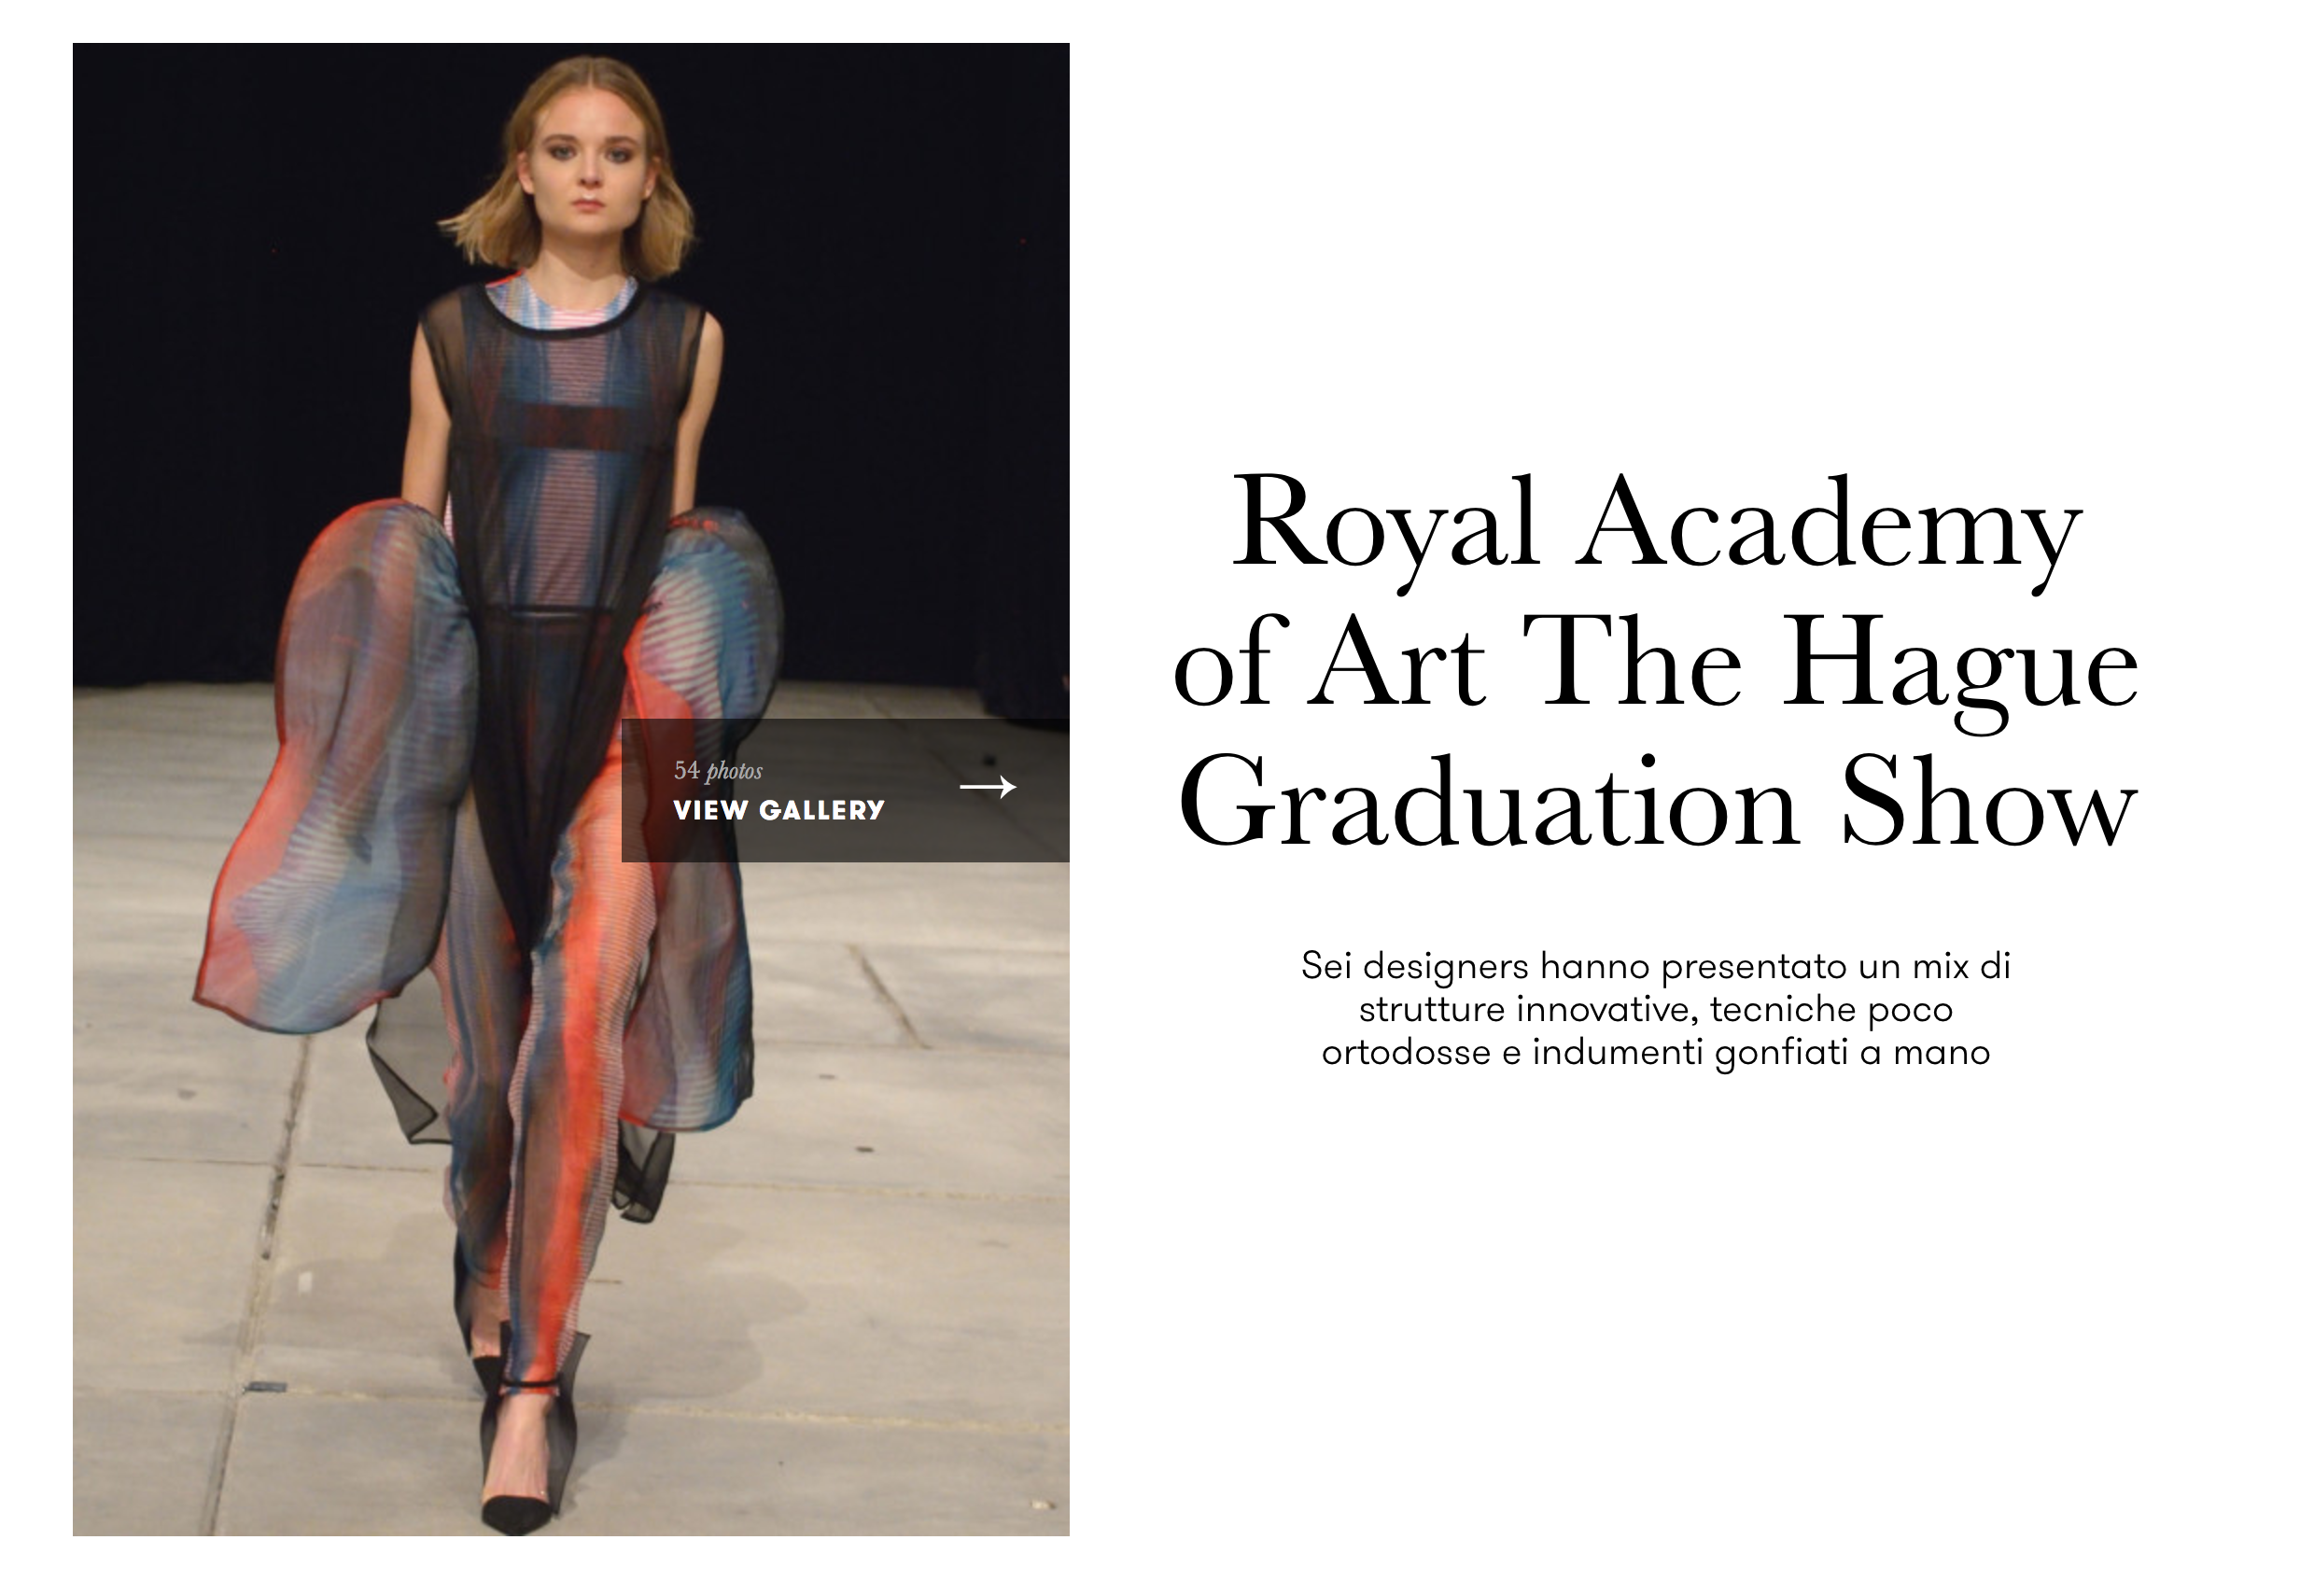 VOGUE.IT Source:  http://www.vogue.it/vogue-talents/fashion-schools/2016/06/24/royal-academy-of-art-the-hague-graduation-show/